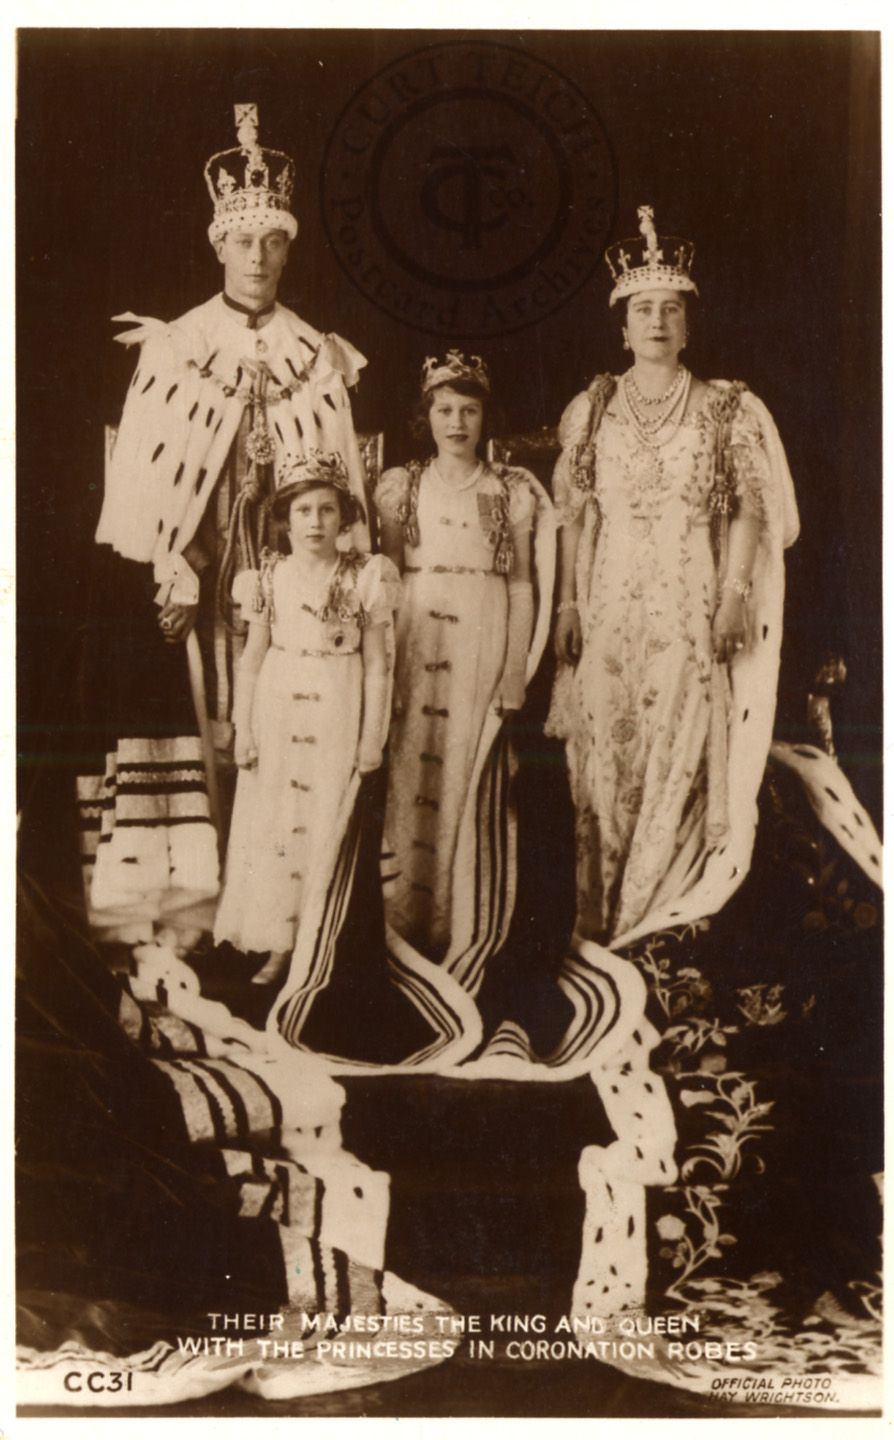 King VI, Queen Elizabeth, Princess Elizabeth, and